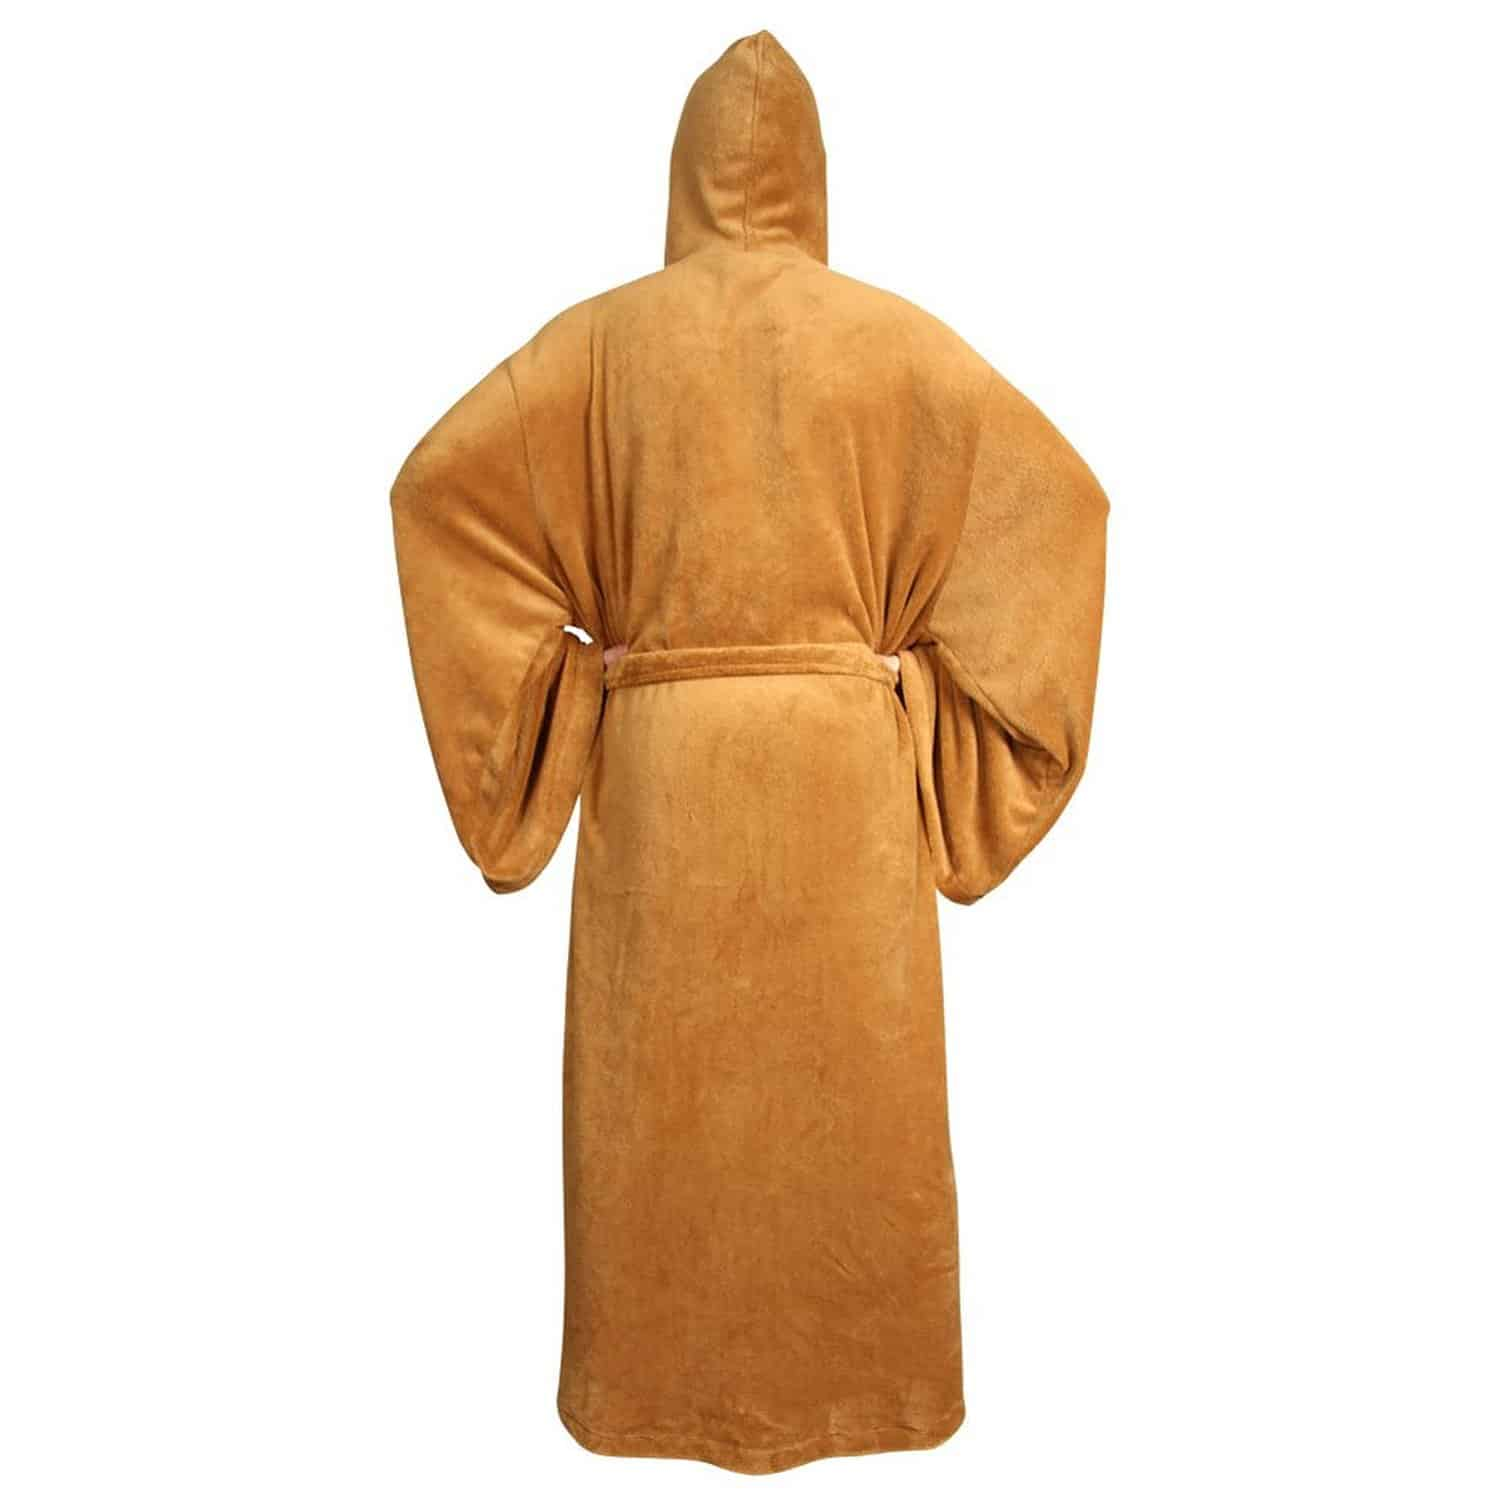 Jedi Dressing Gowns Star Wars Fan Gift Idea